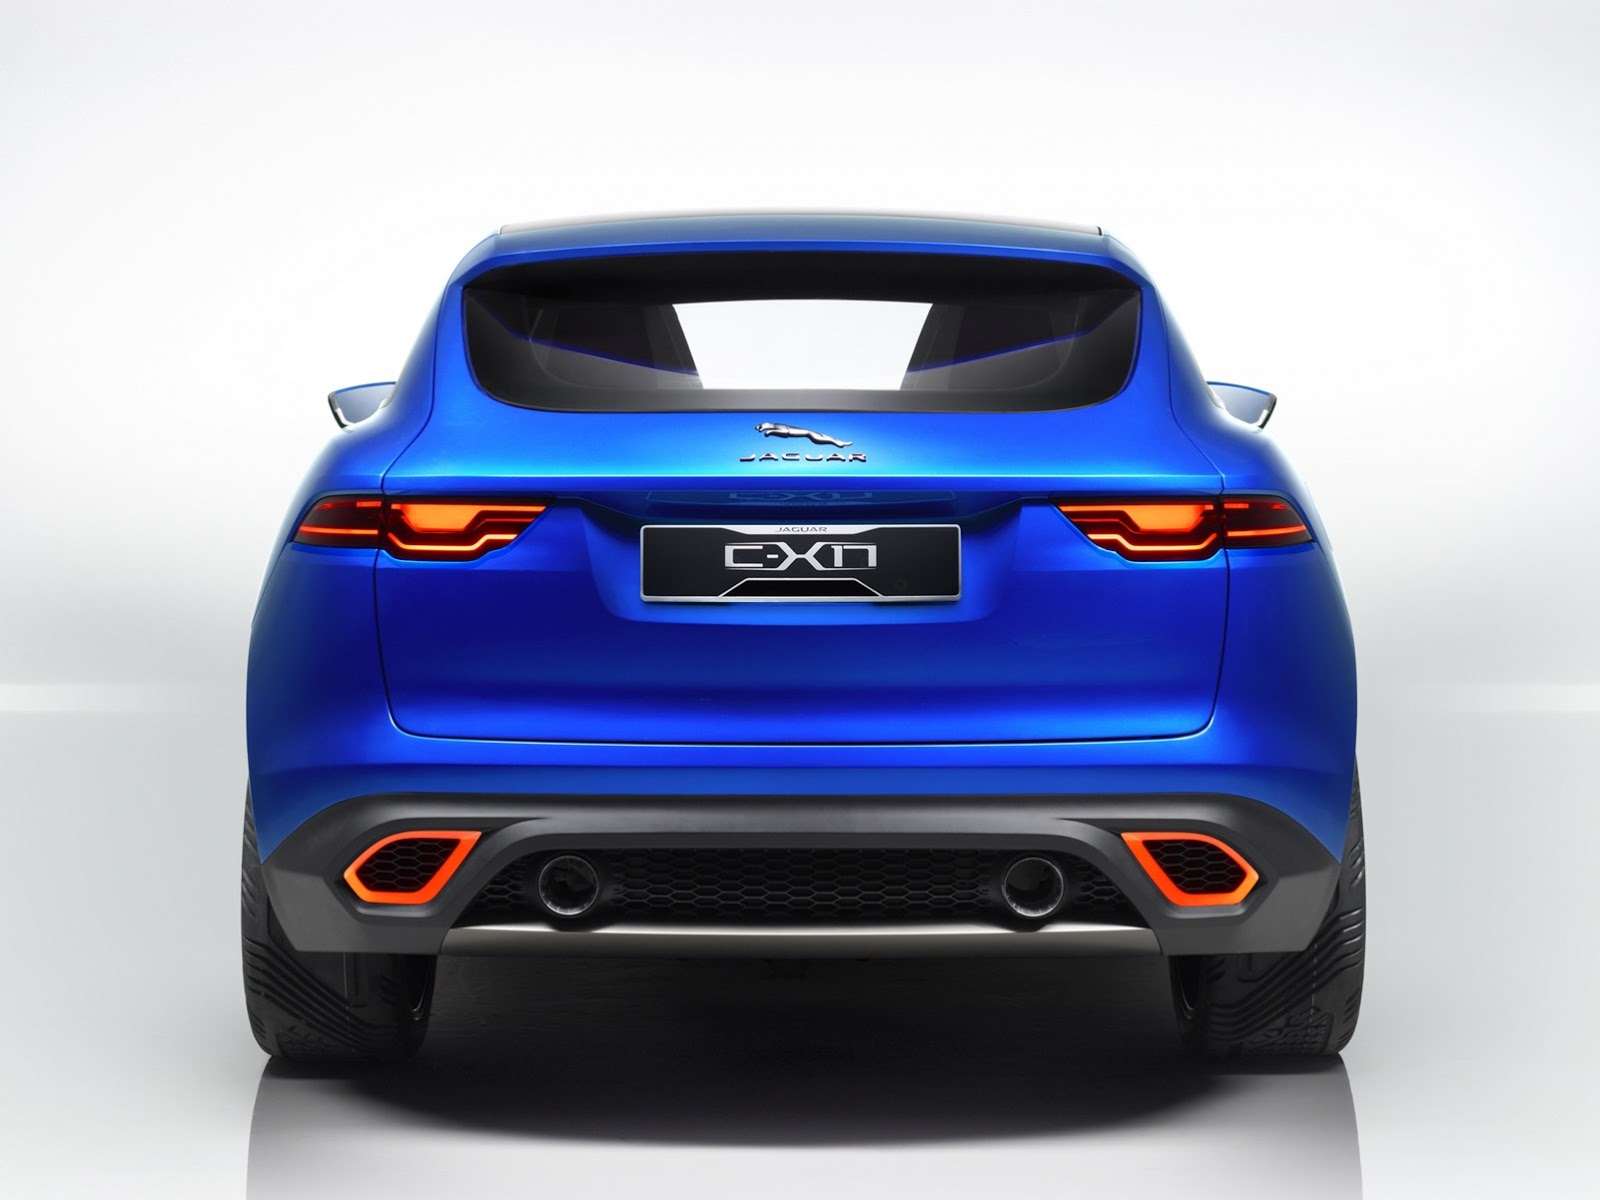 ocean and pics configurations new martin best otomotif review jaguar aston price pictures redesign the